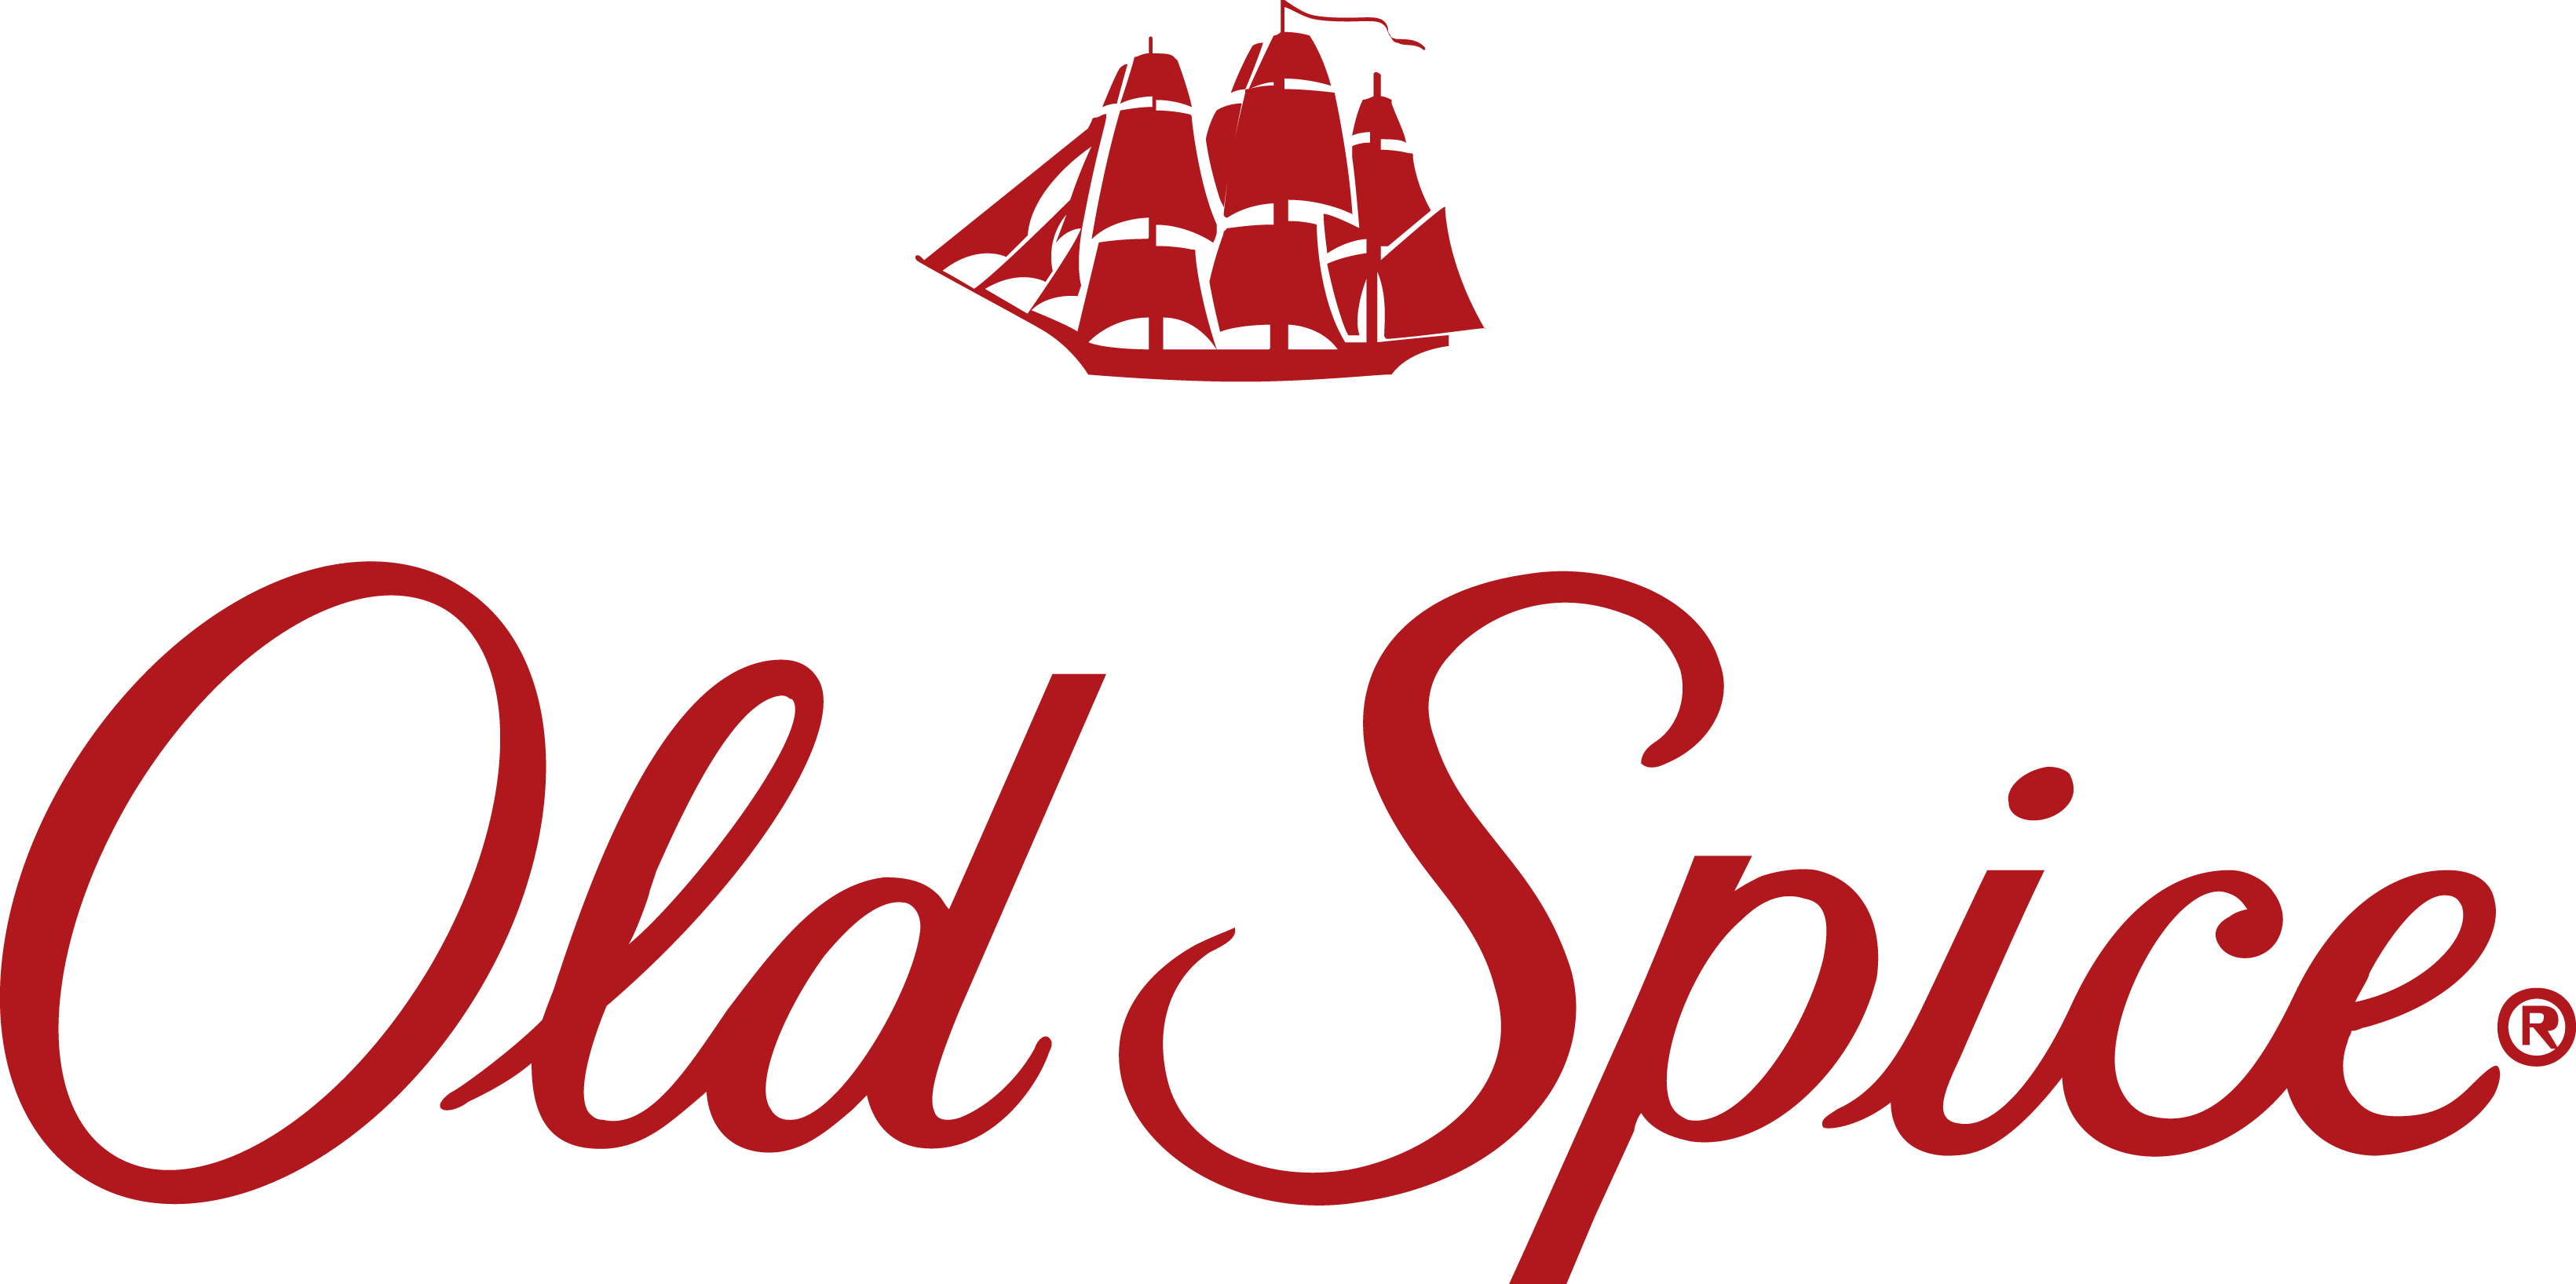 Old Spice Logo - Aarp Logo Vector PNG - American Heartsaver Day Vector PNG